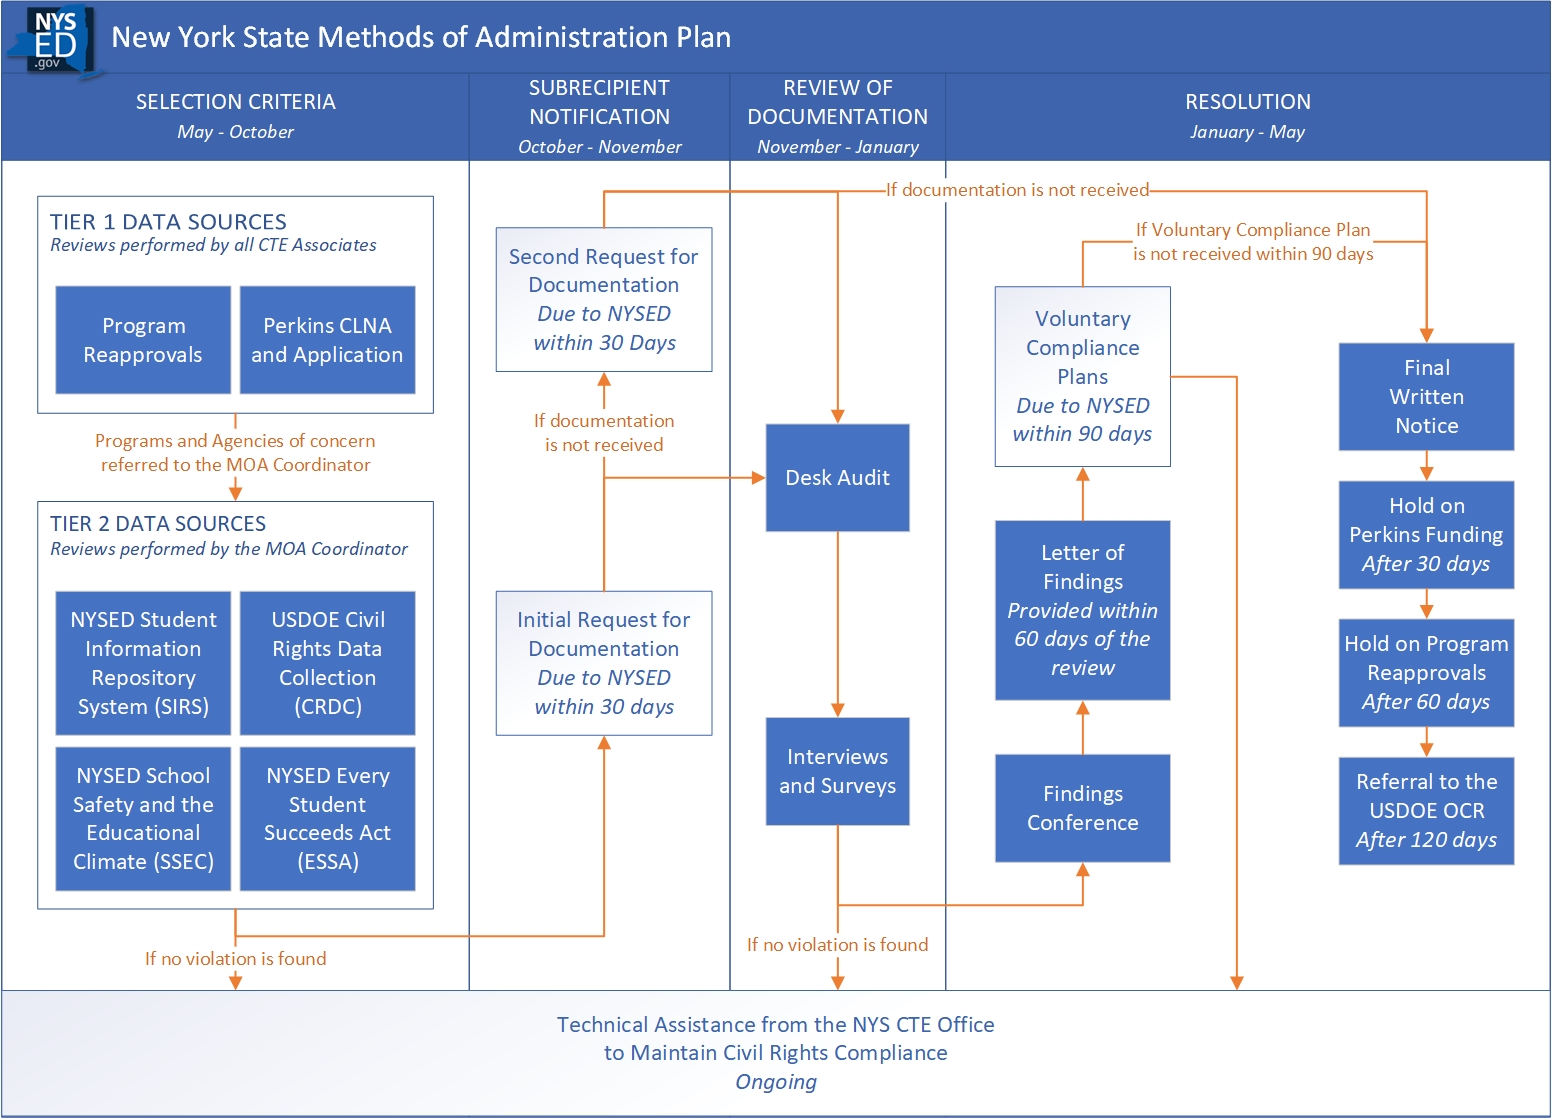 New York State Methods of Administration Plan Flowchart Illustrating the Civil Rights Process